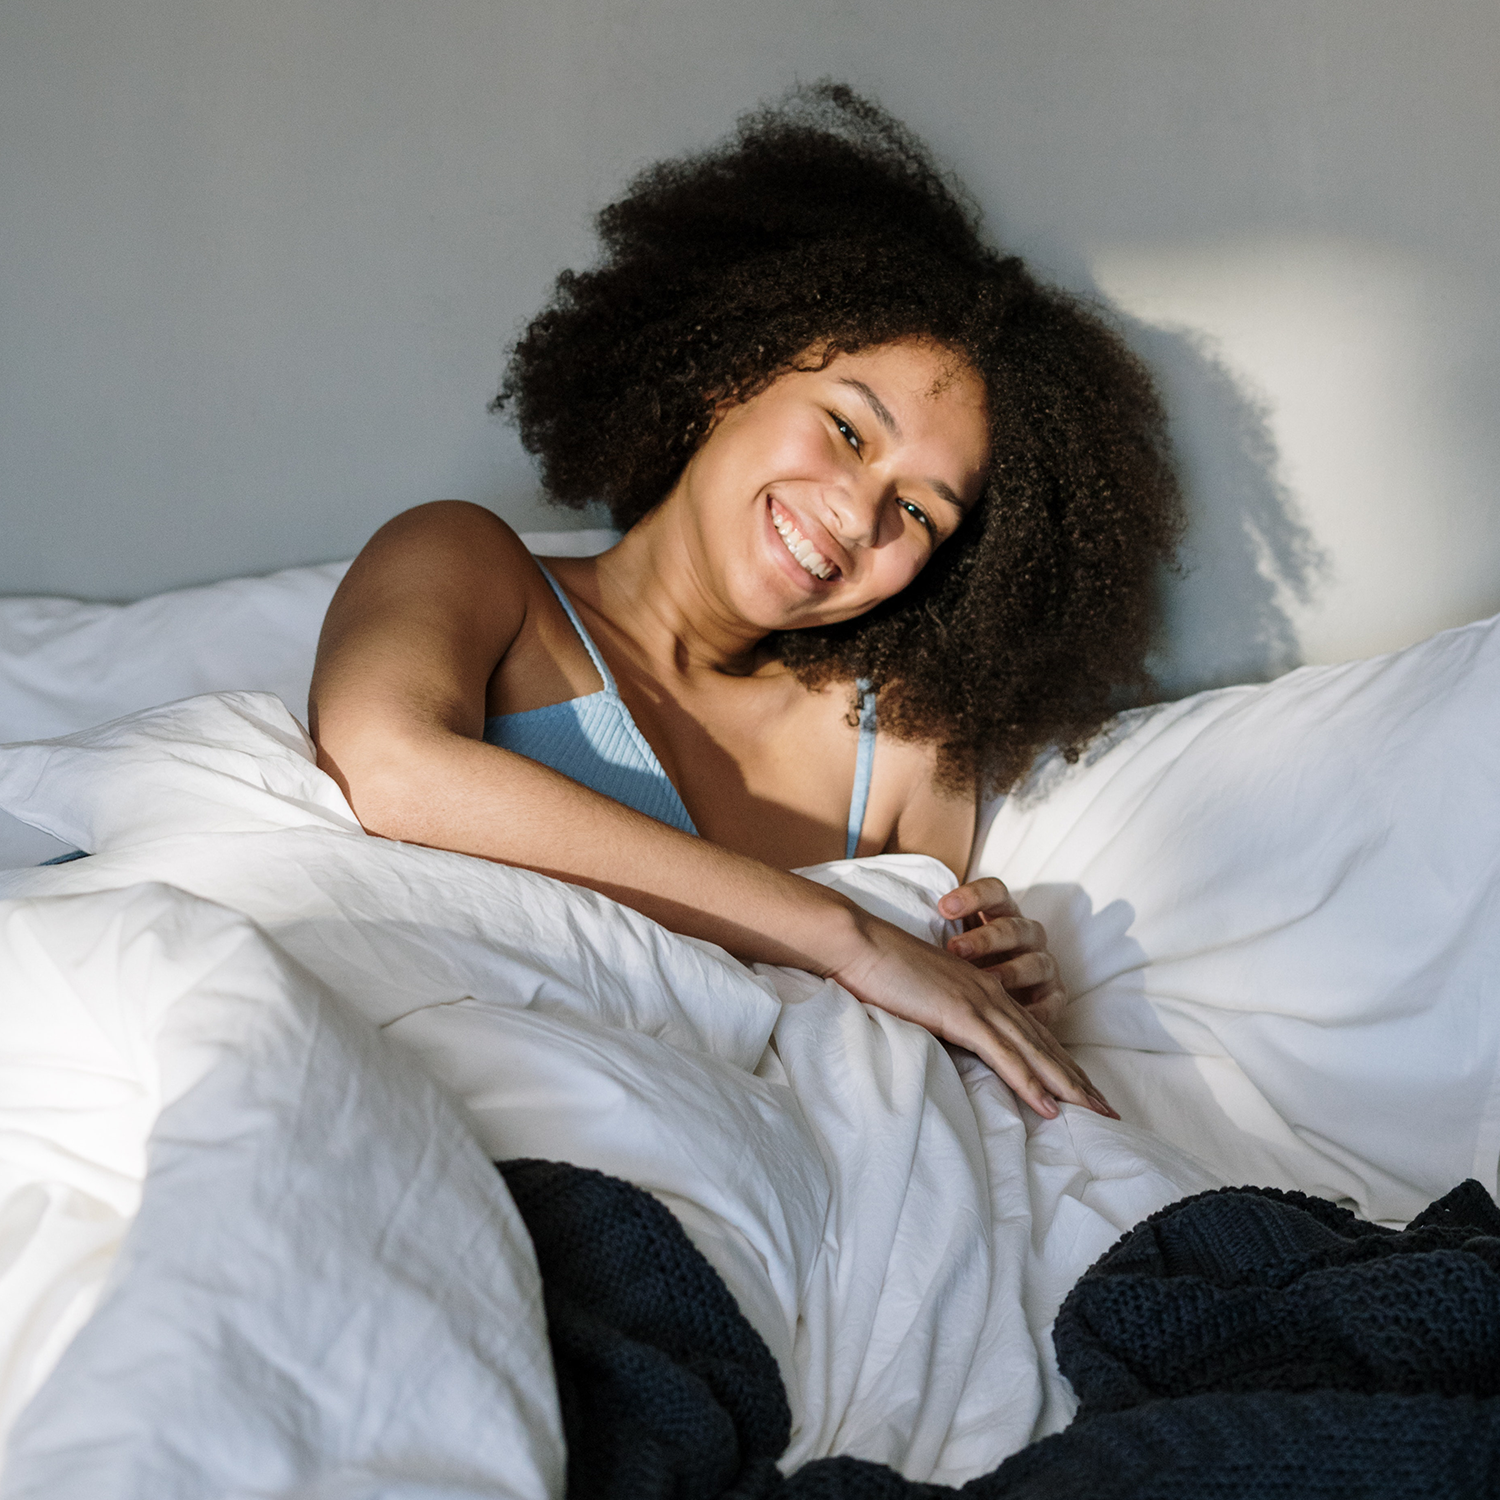 Girl waking up with ease after taking B-SYNC ON food supplement that supports your natural wake-up process.